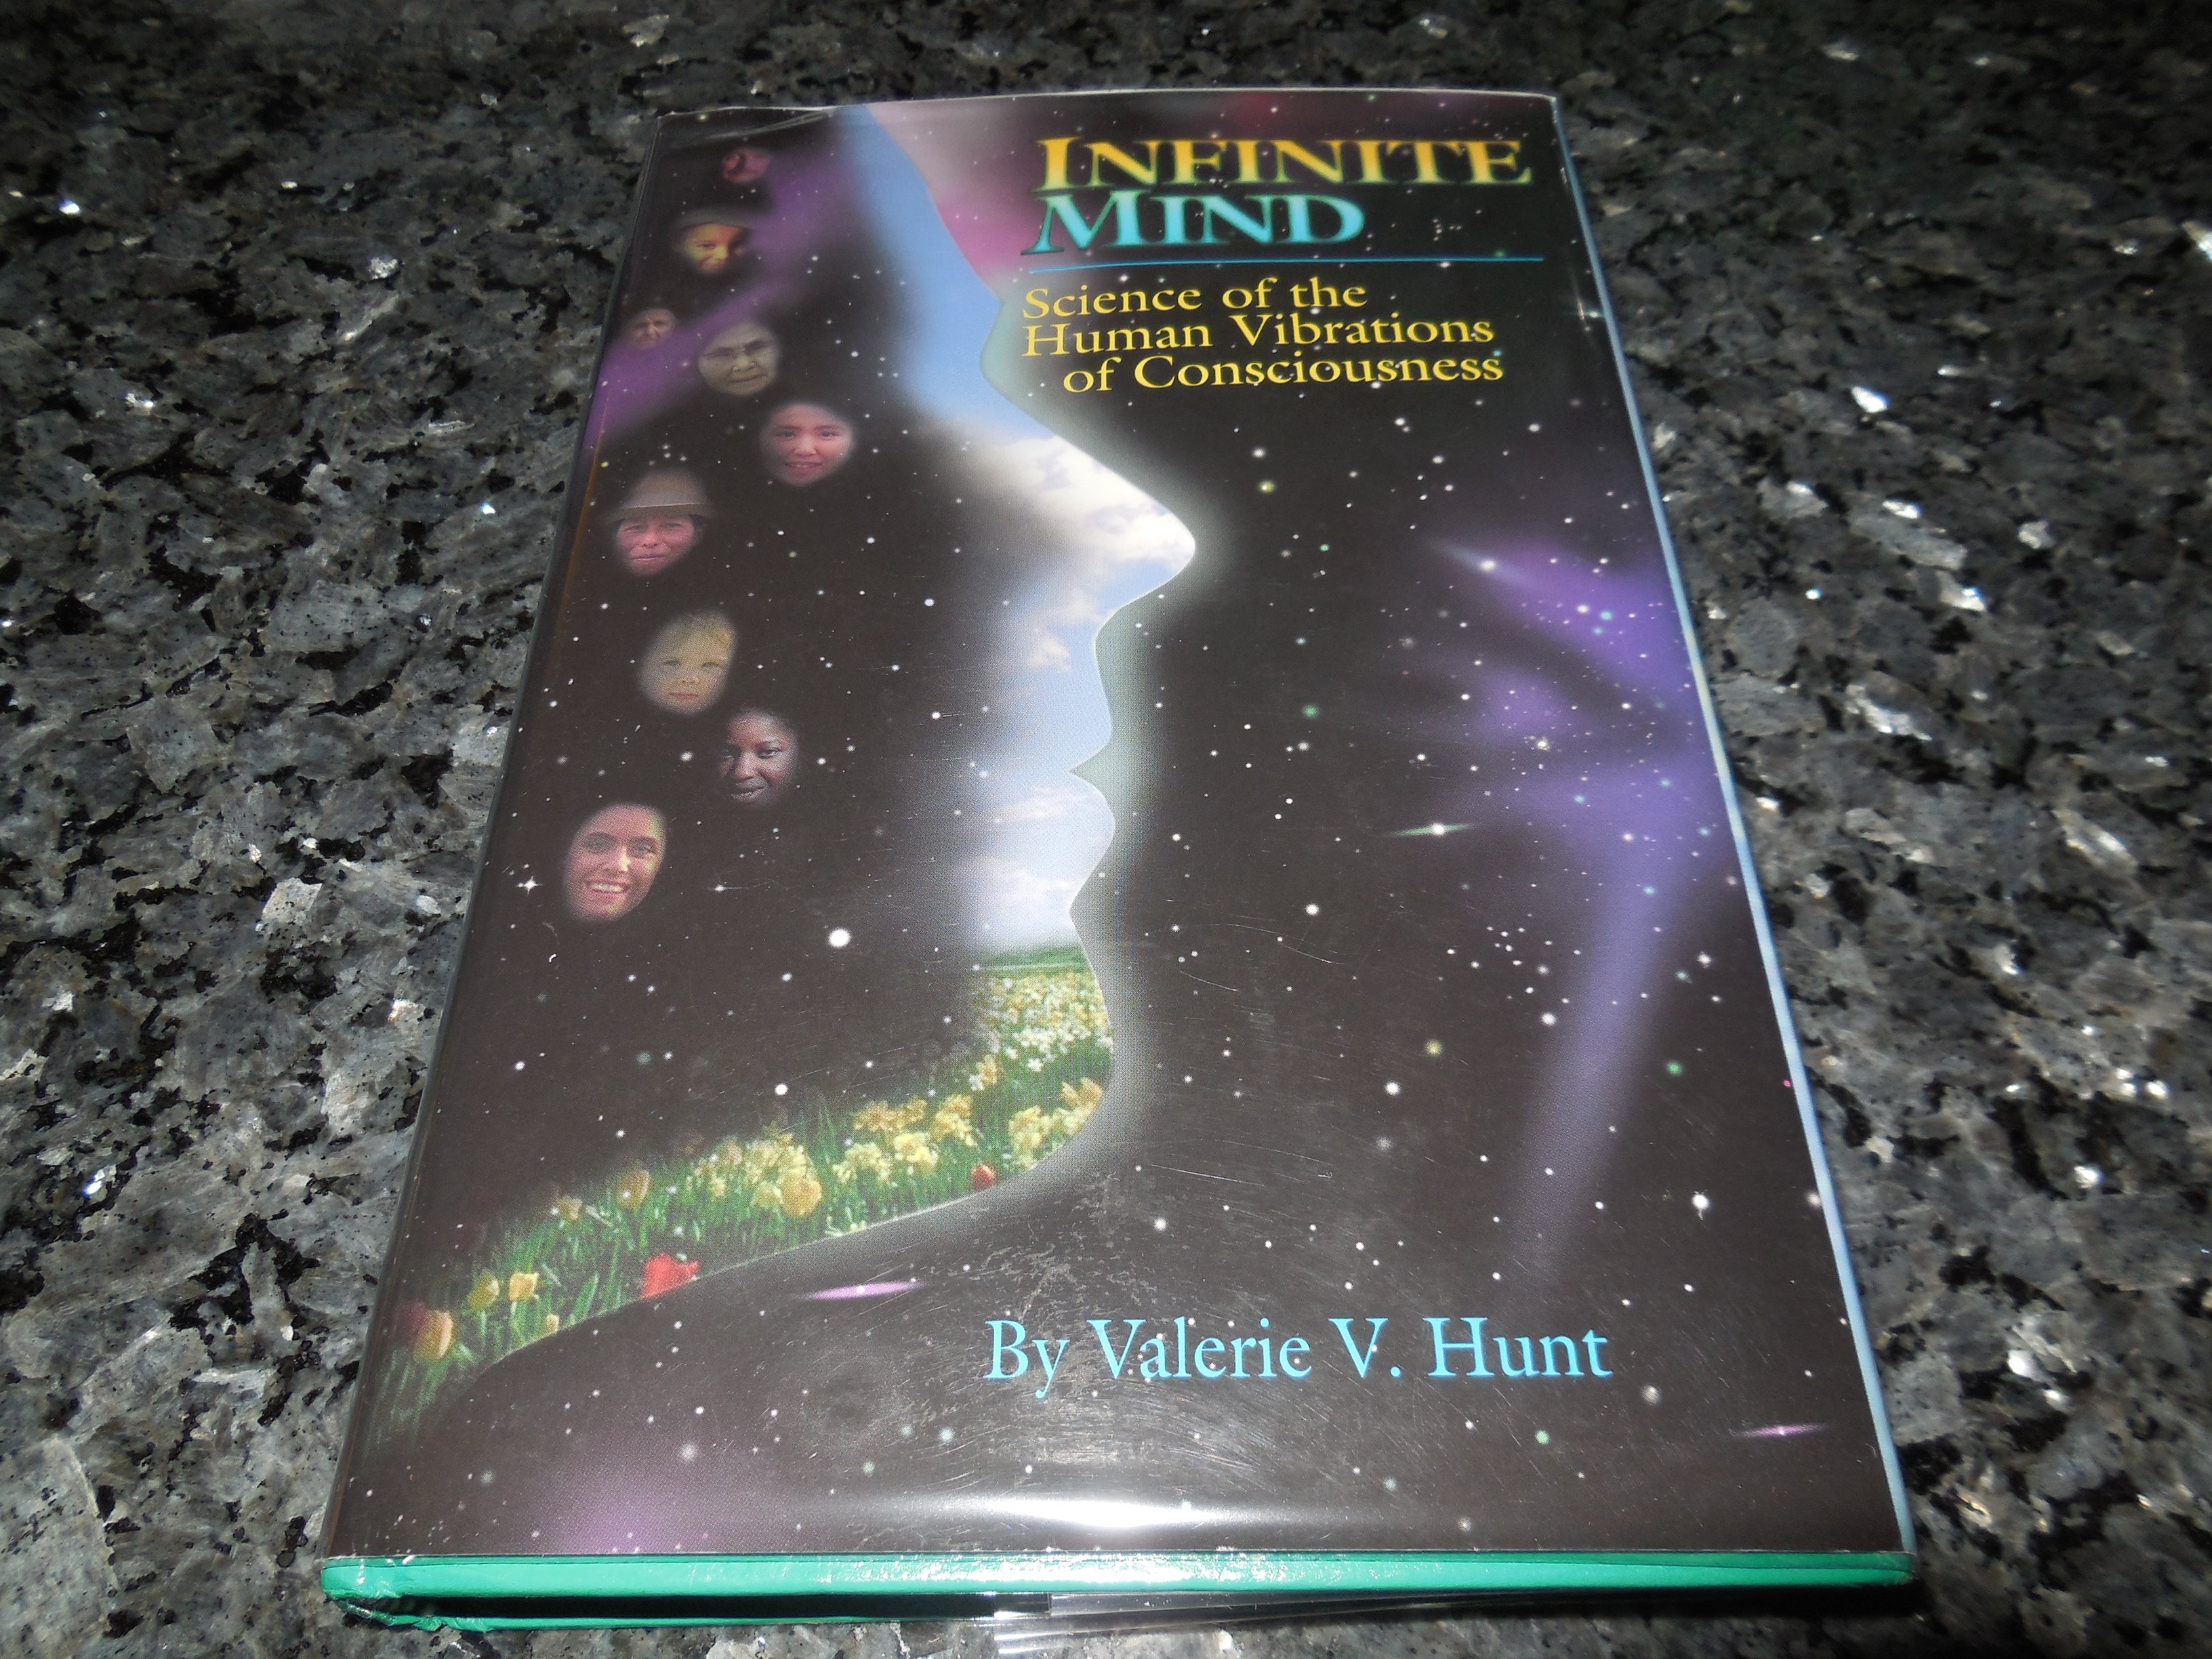 Image for Infinite Mind: Science of the Human Vibrations of Consciousness